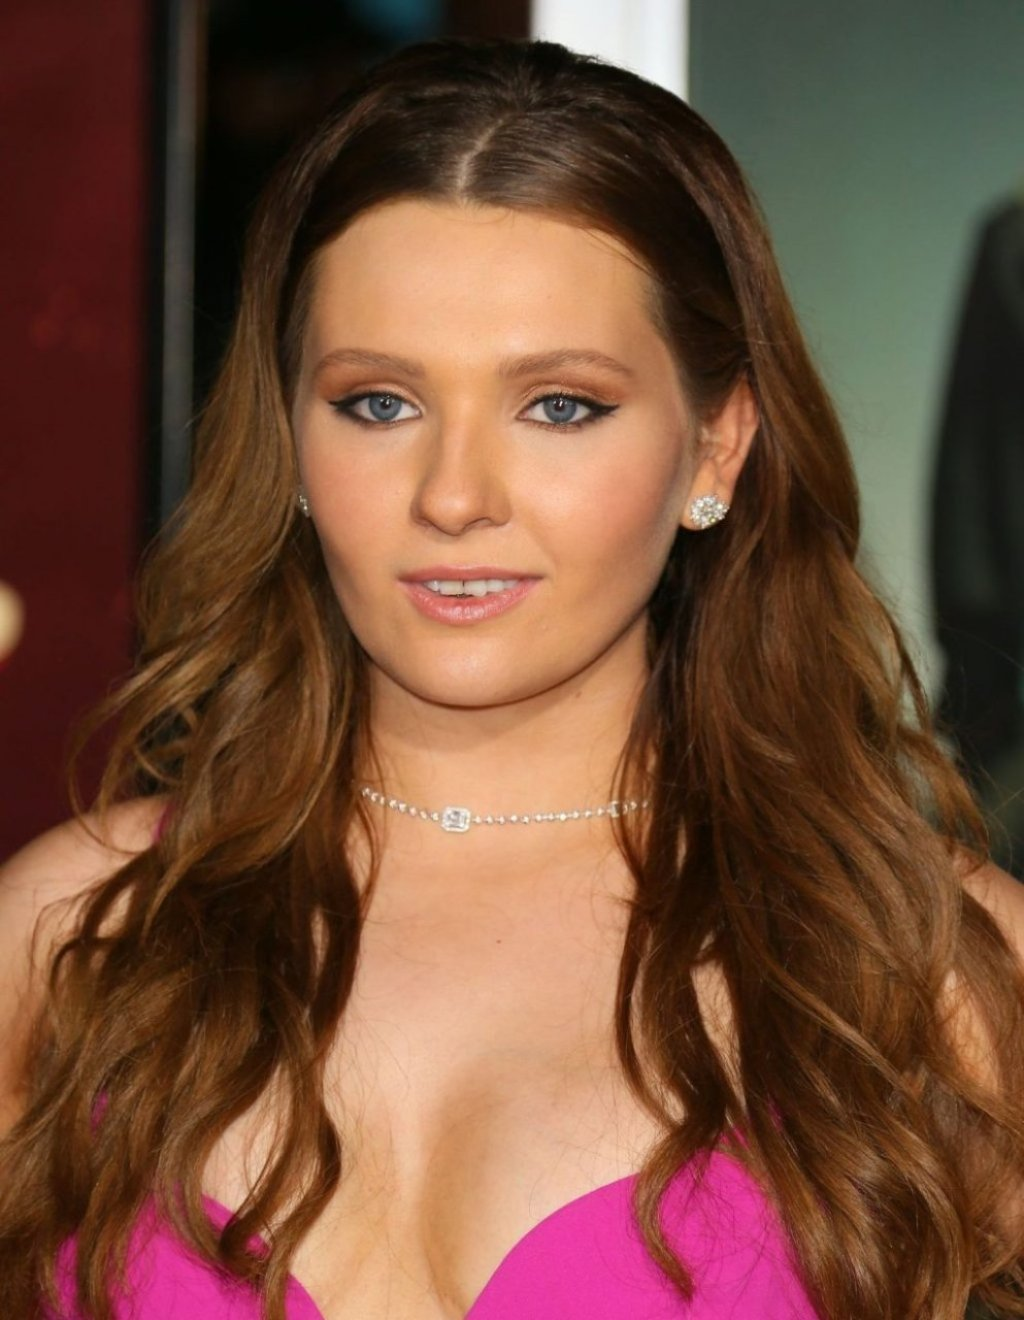 Abigail Breslin Sexy (57 Photos)